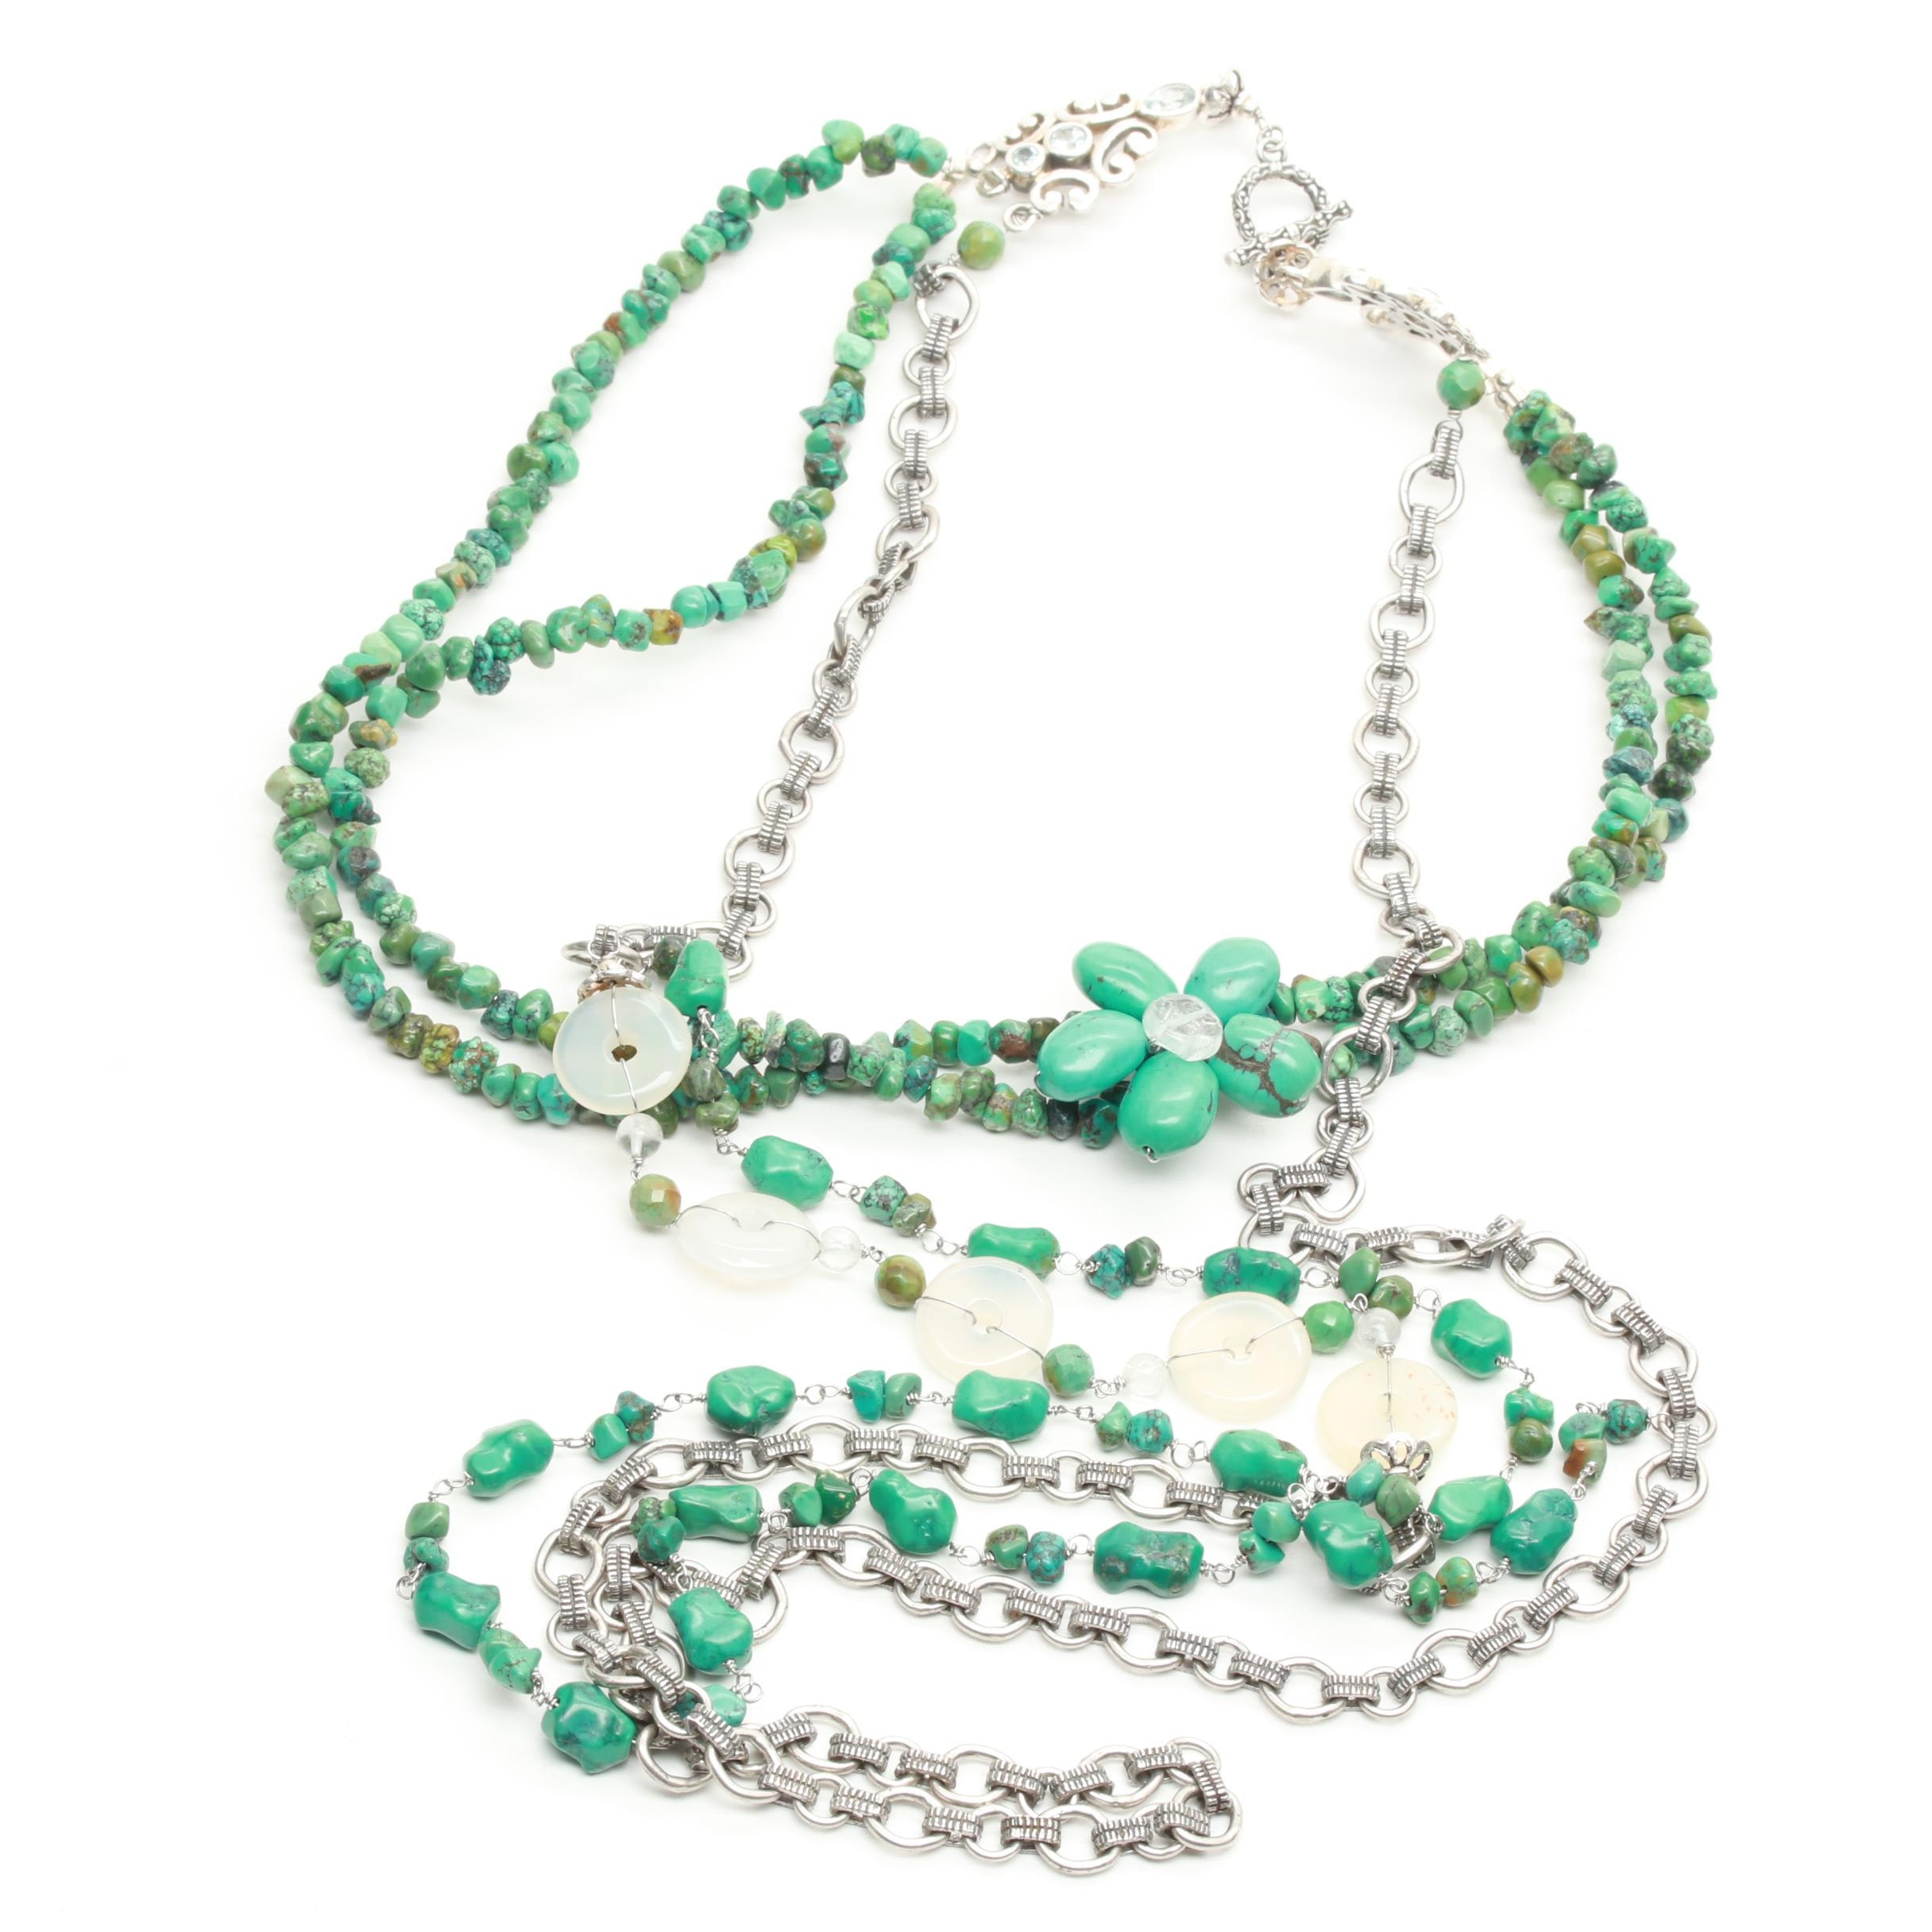 Sterling Silver Blue Topaz, Turquoise, and Chalcedony Necklace